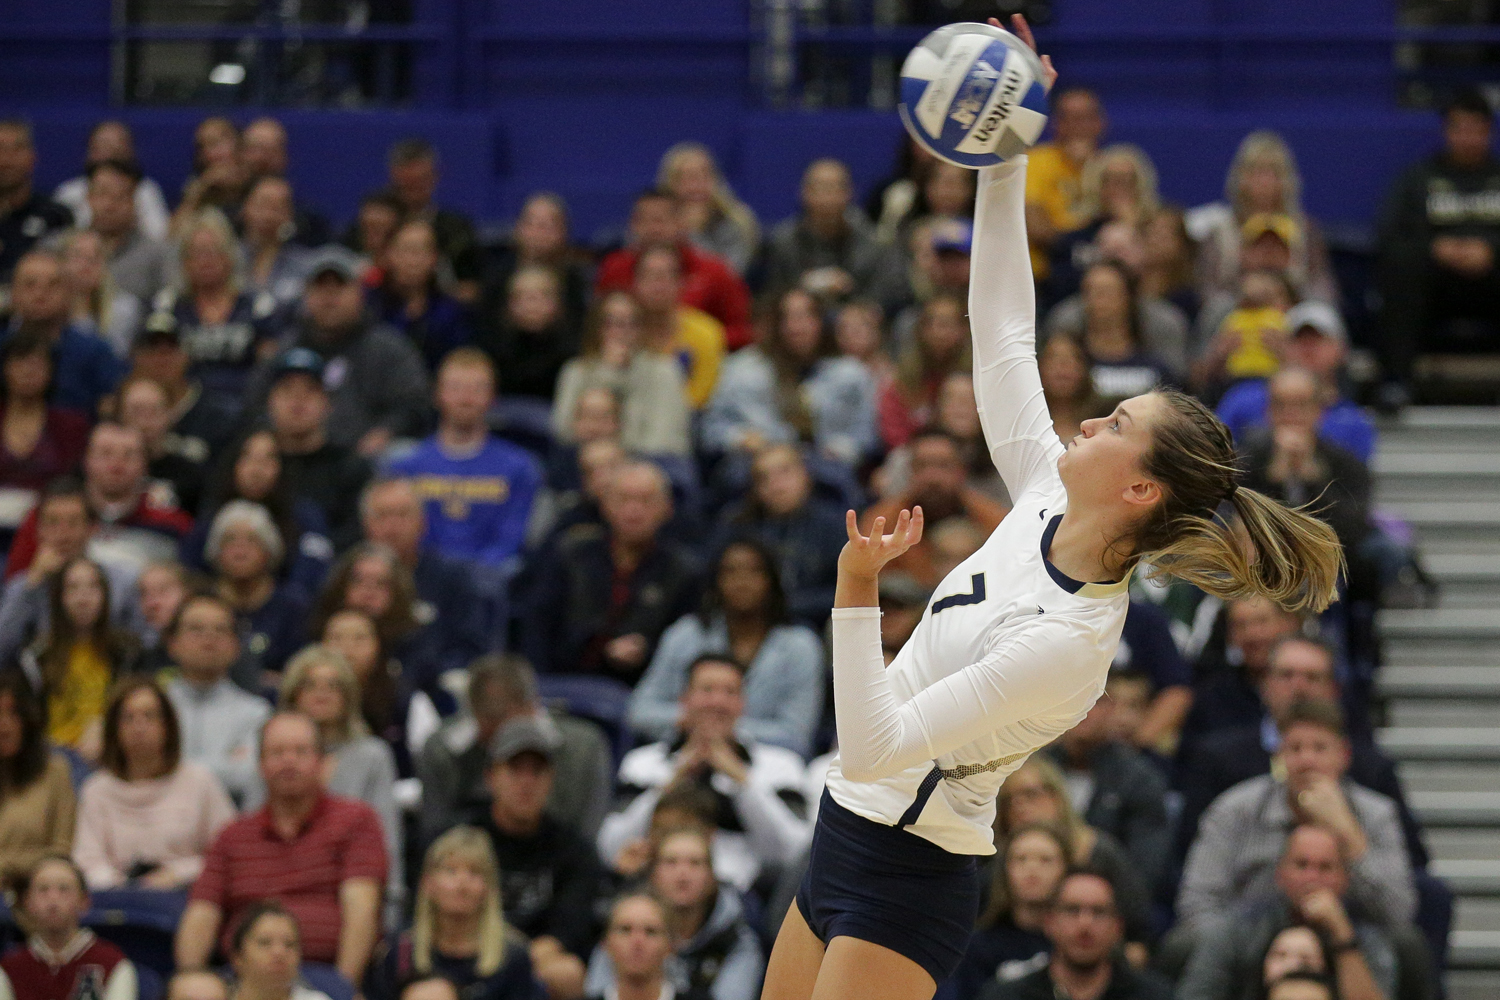 Junior middle hitter Layne Van Buskirk (7) attacks the ball during the second set of Pitt's 3-0 victory over Notre Dame Friday evening. (Photo by Thomas Yang | Assistant Visual Editor)